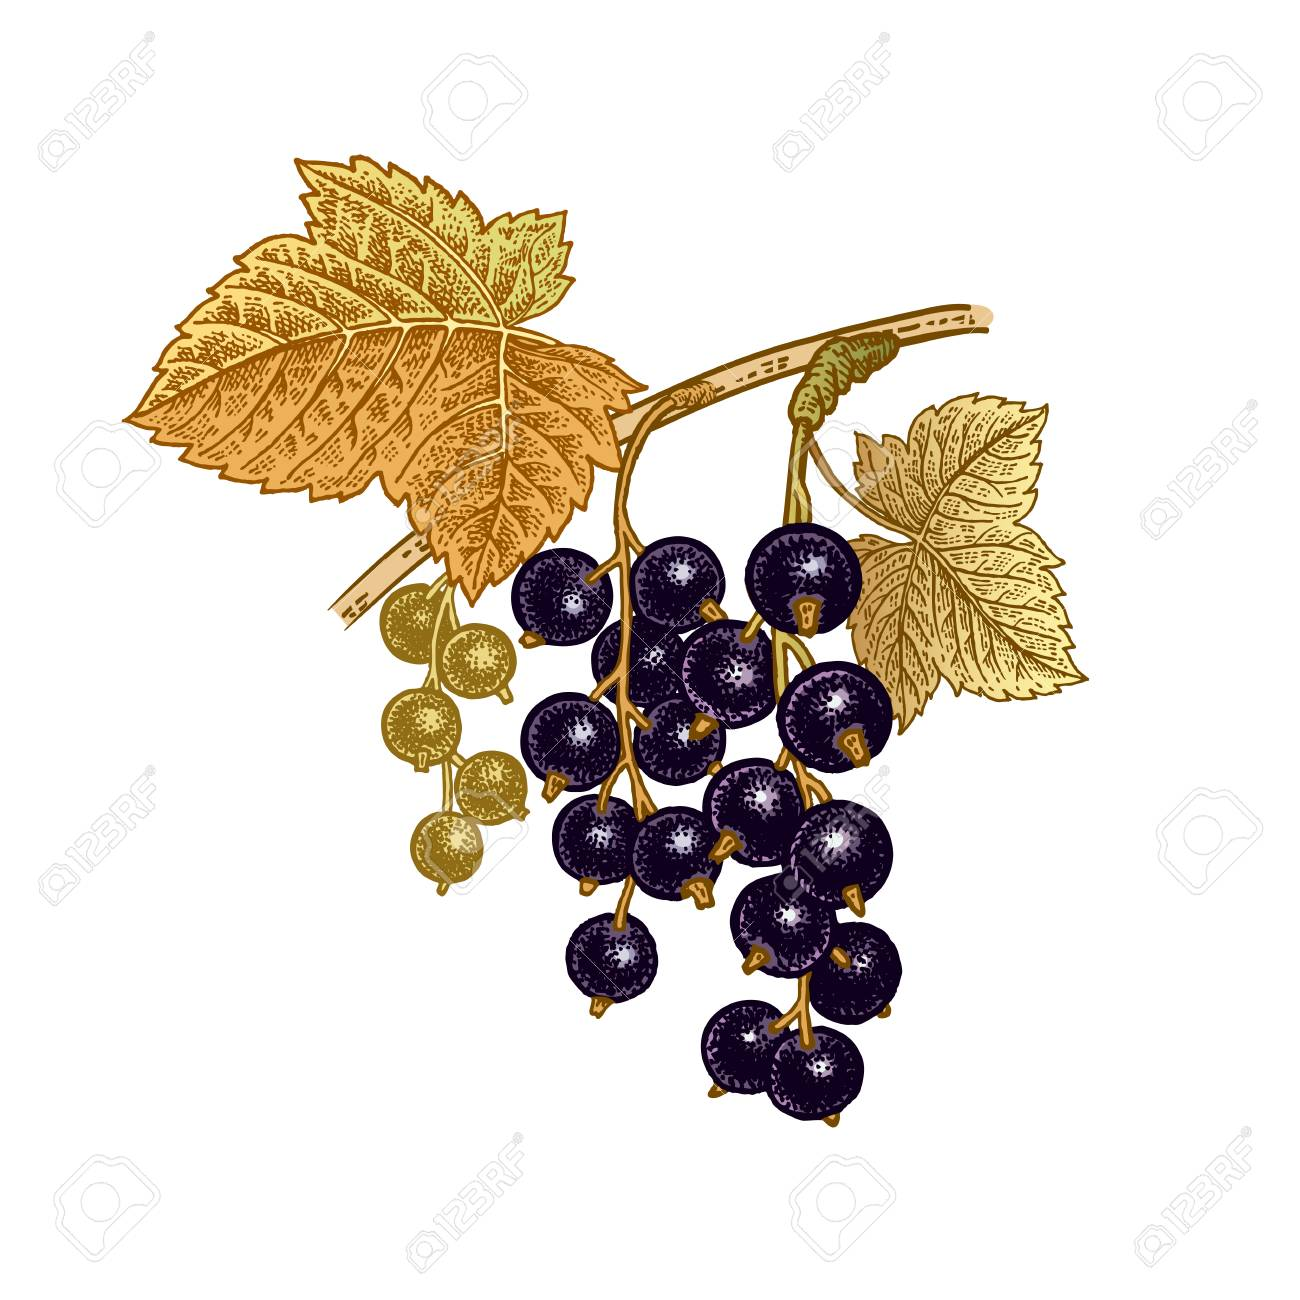 Black currant berries. Realistic color vector illustration plant. Hand drawing. Fruit, leaf, branch isolated on white background. Decoration products for health and beauty. Vintage. - 91010142